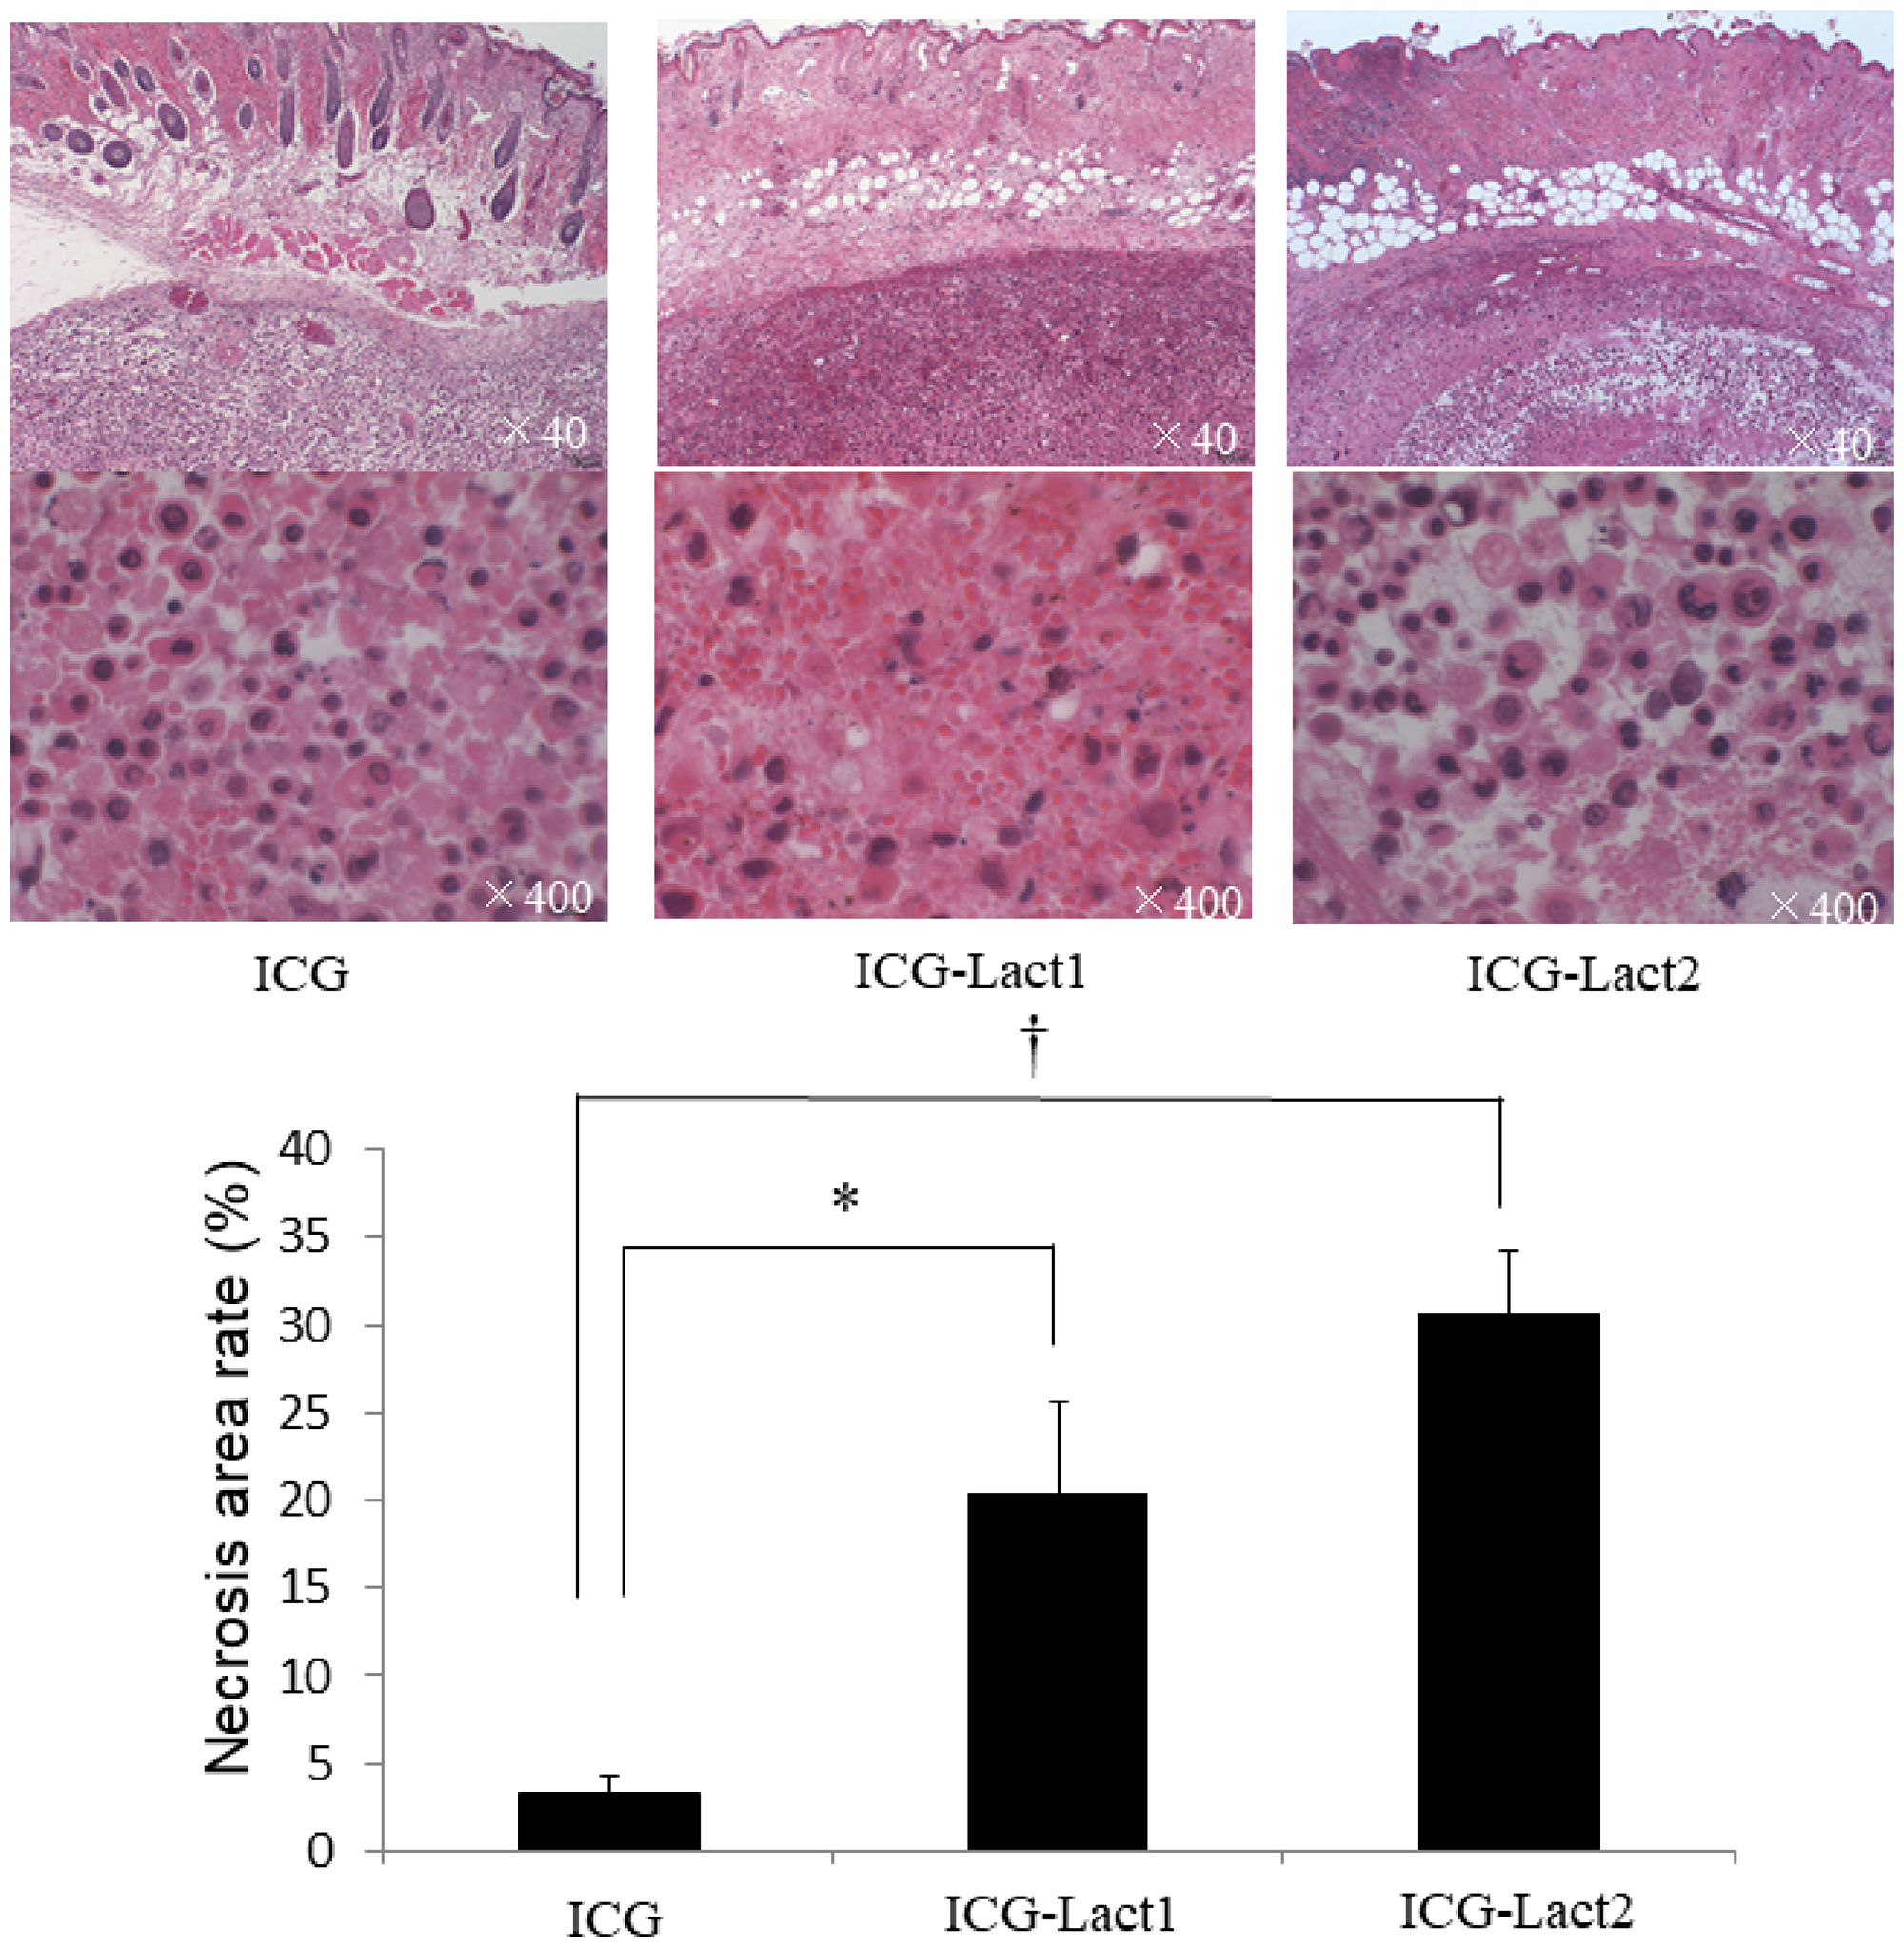 Effect of PDT on necrosis of subcutaneous tumors in the ICG and ICG-lactosomes mice.